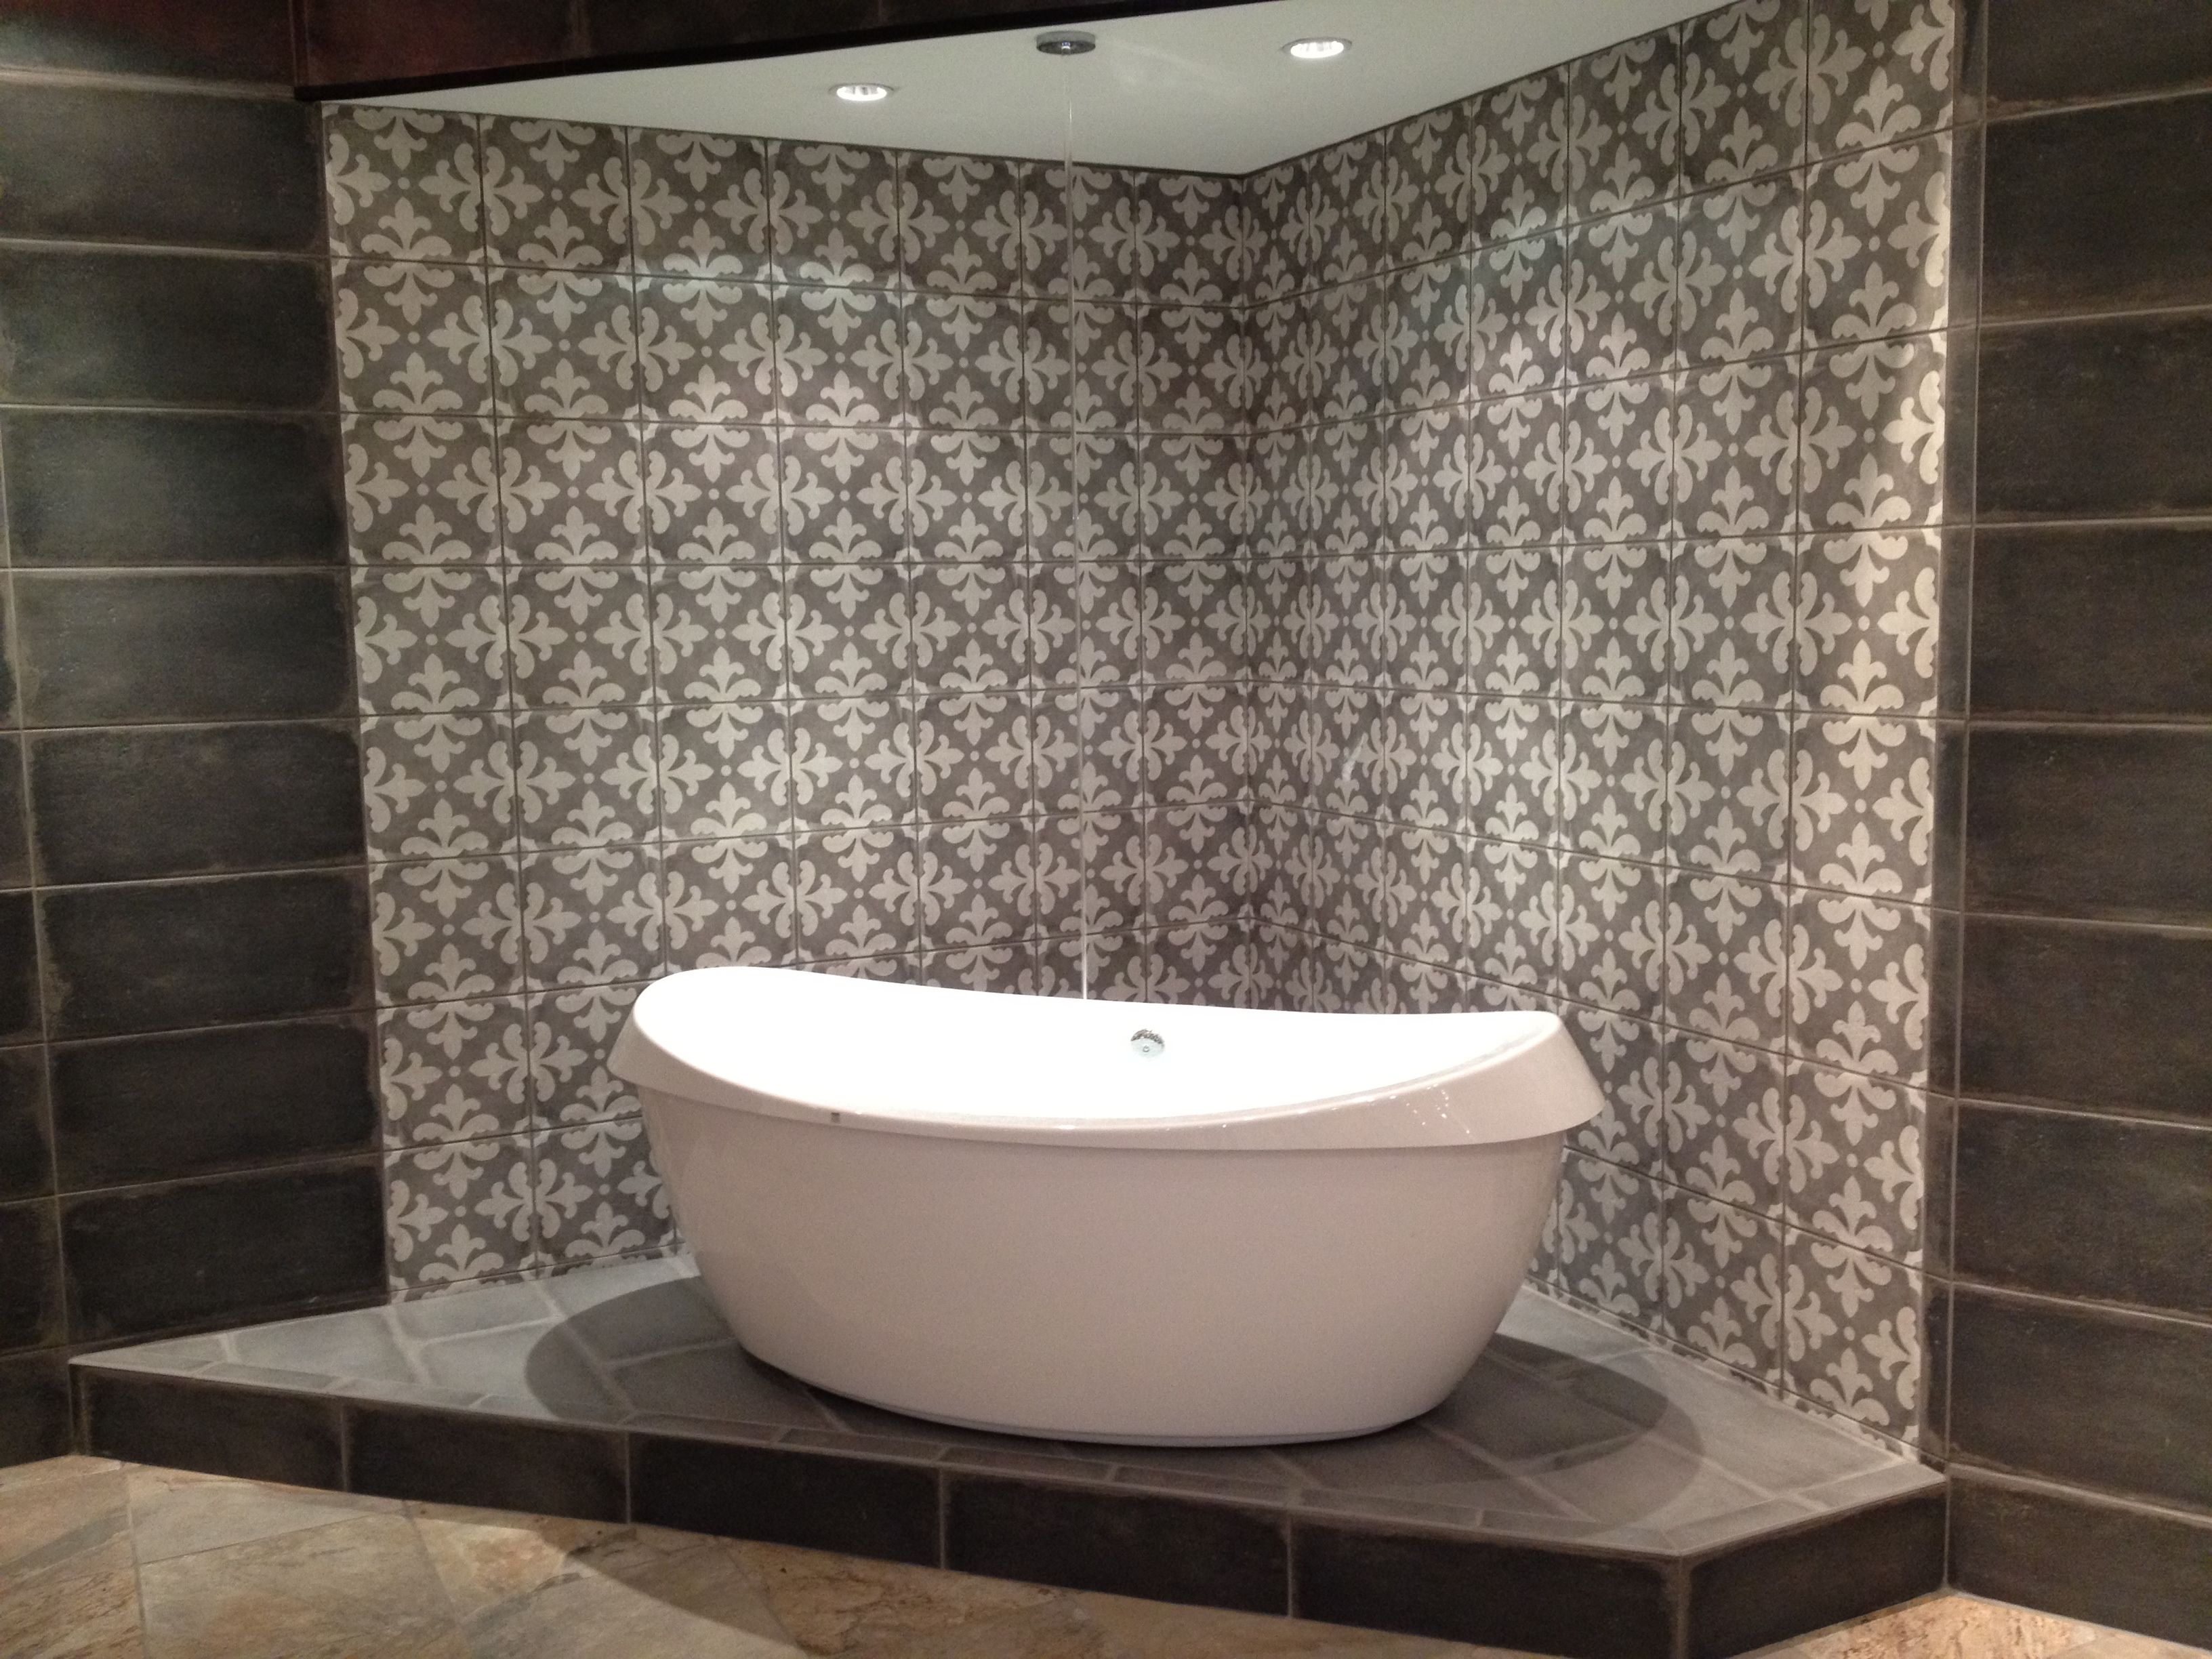 New Tub Display At Our Memphis Showroom Surrounded With